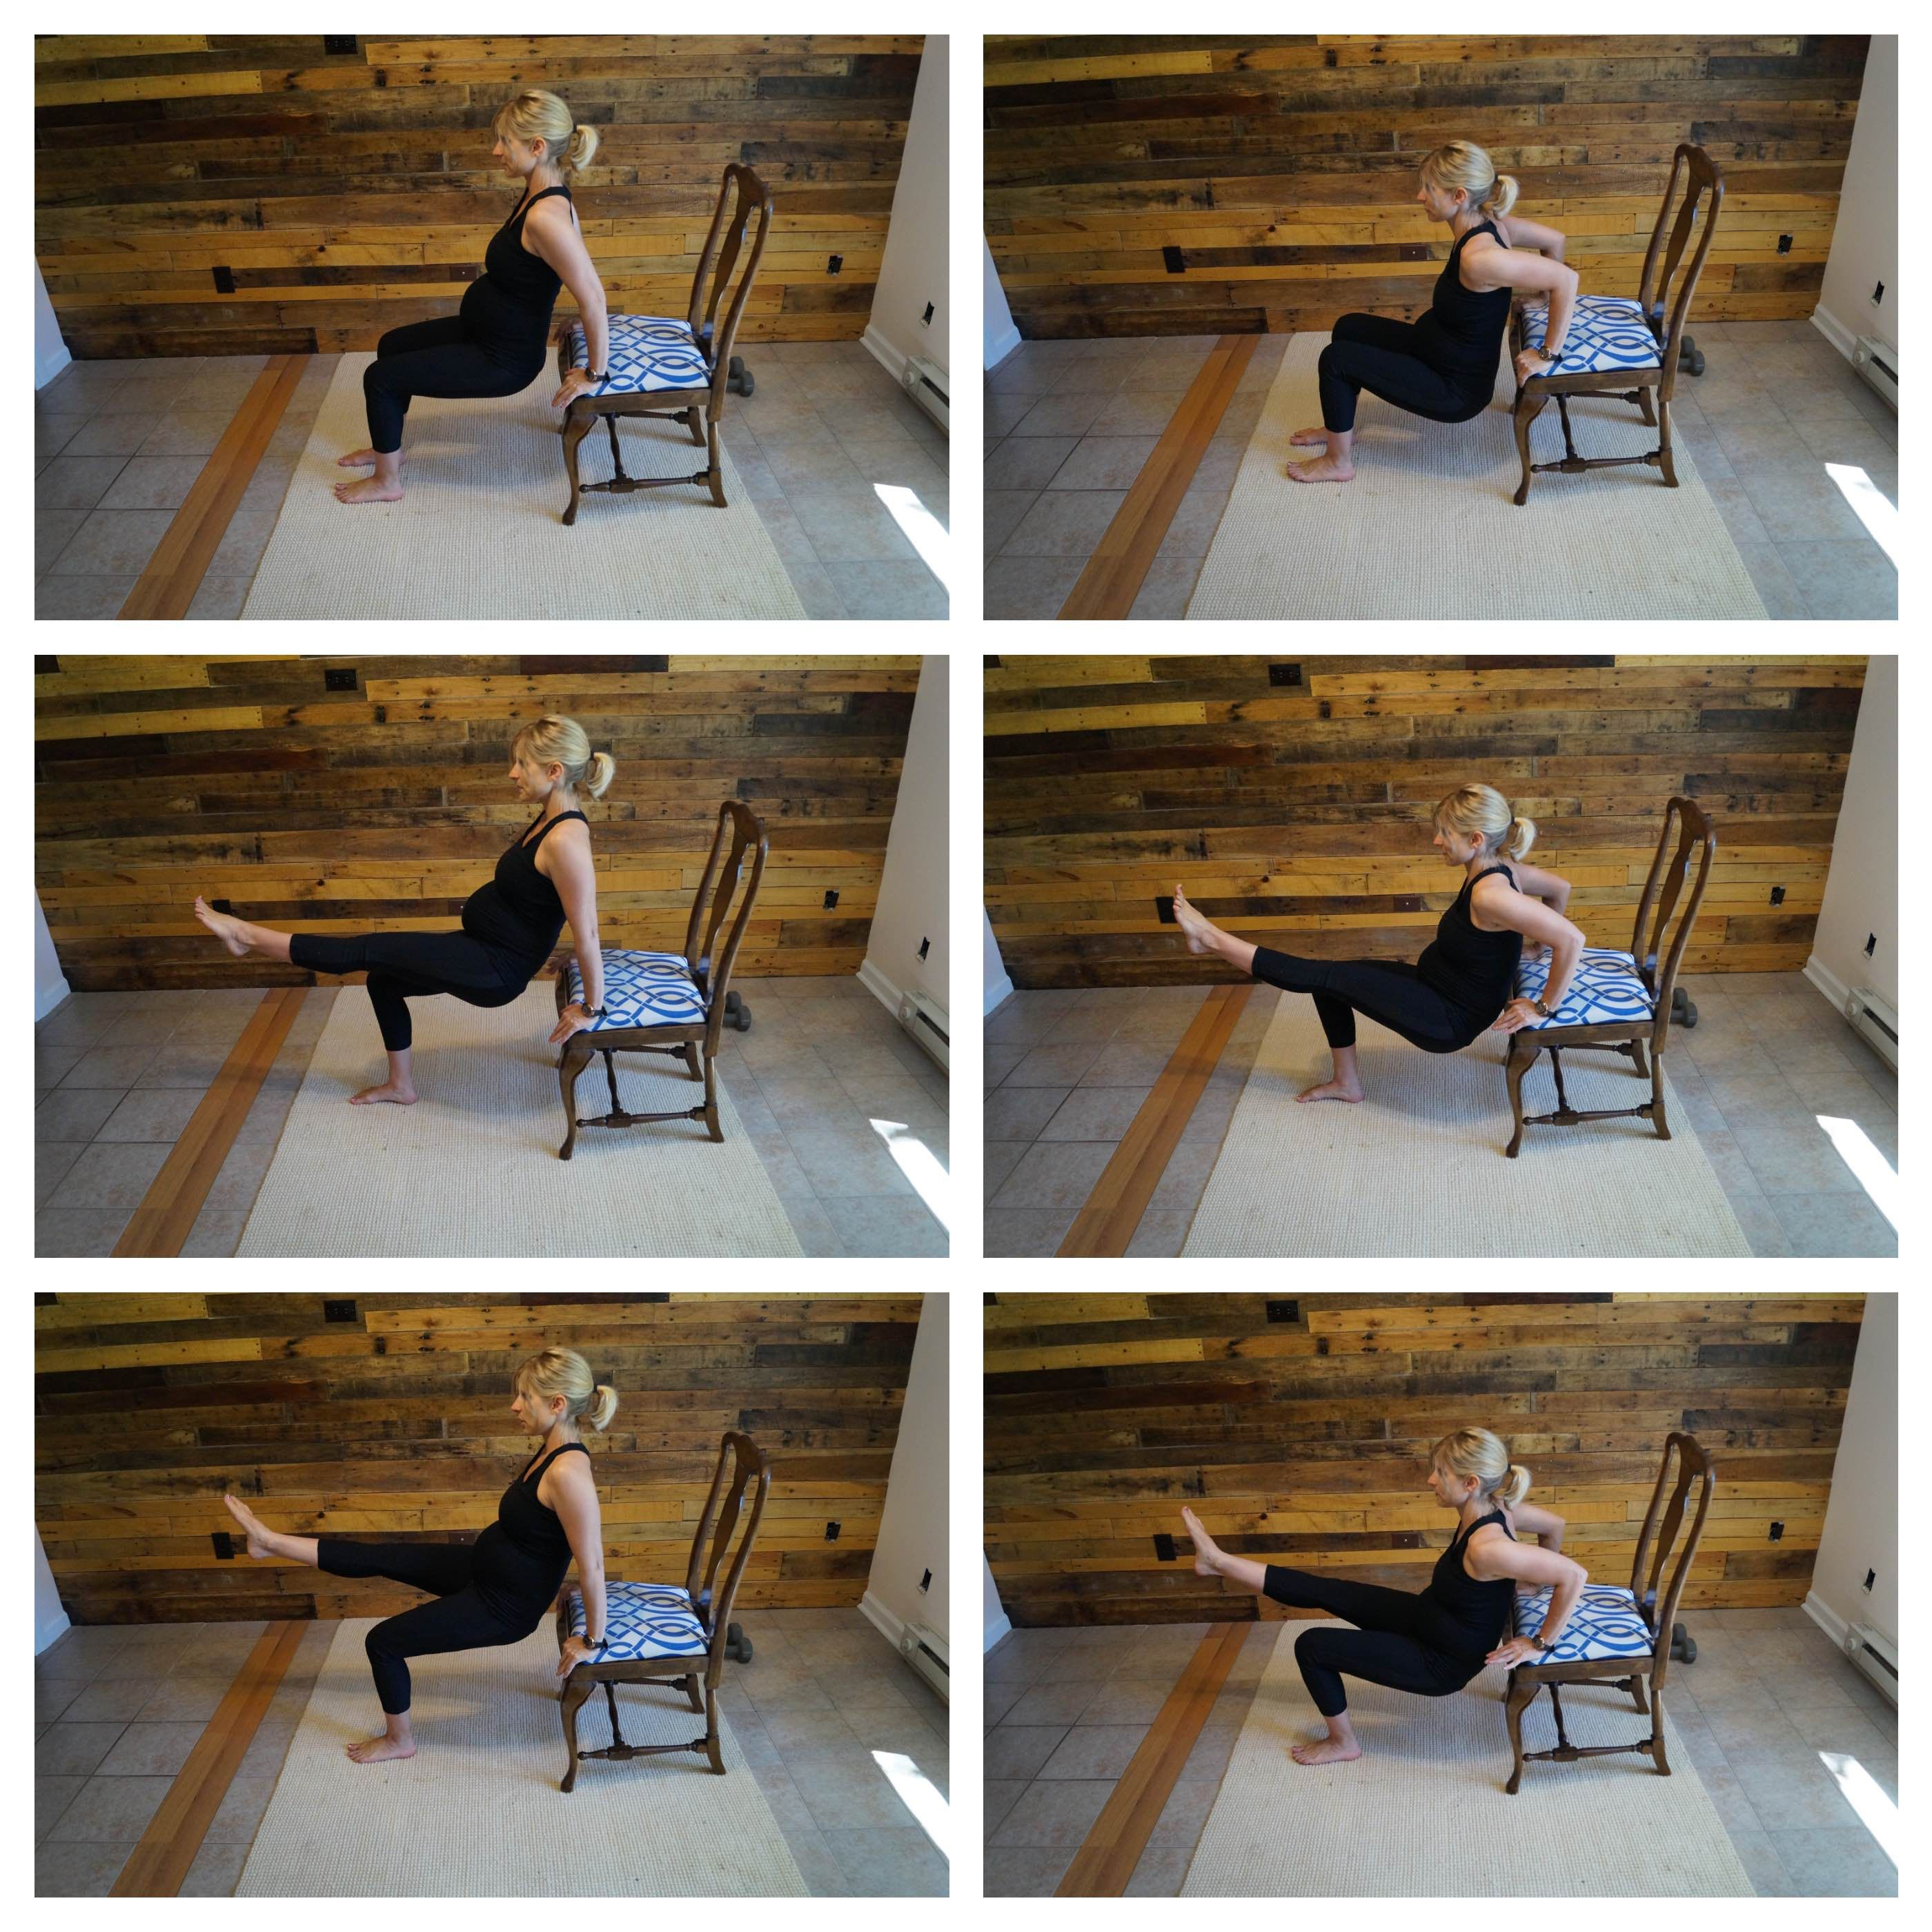 Tricep Dips Using A Stable Chair Begin With Hands Palms On The Edge Of The Chair Take A Step Forward Bend Your L Tricep Dips Easy Workouts Postnatal Workout